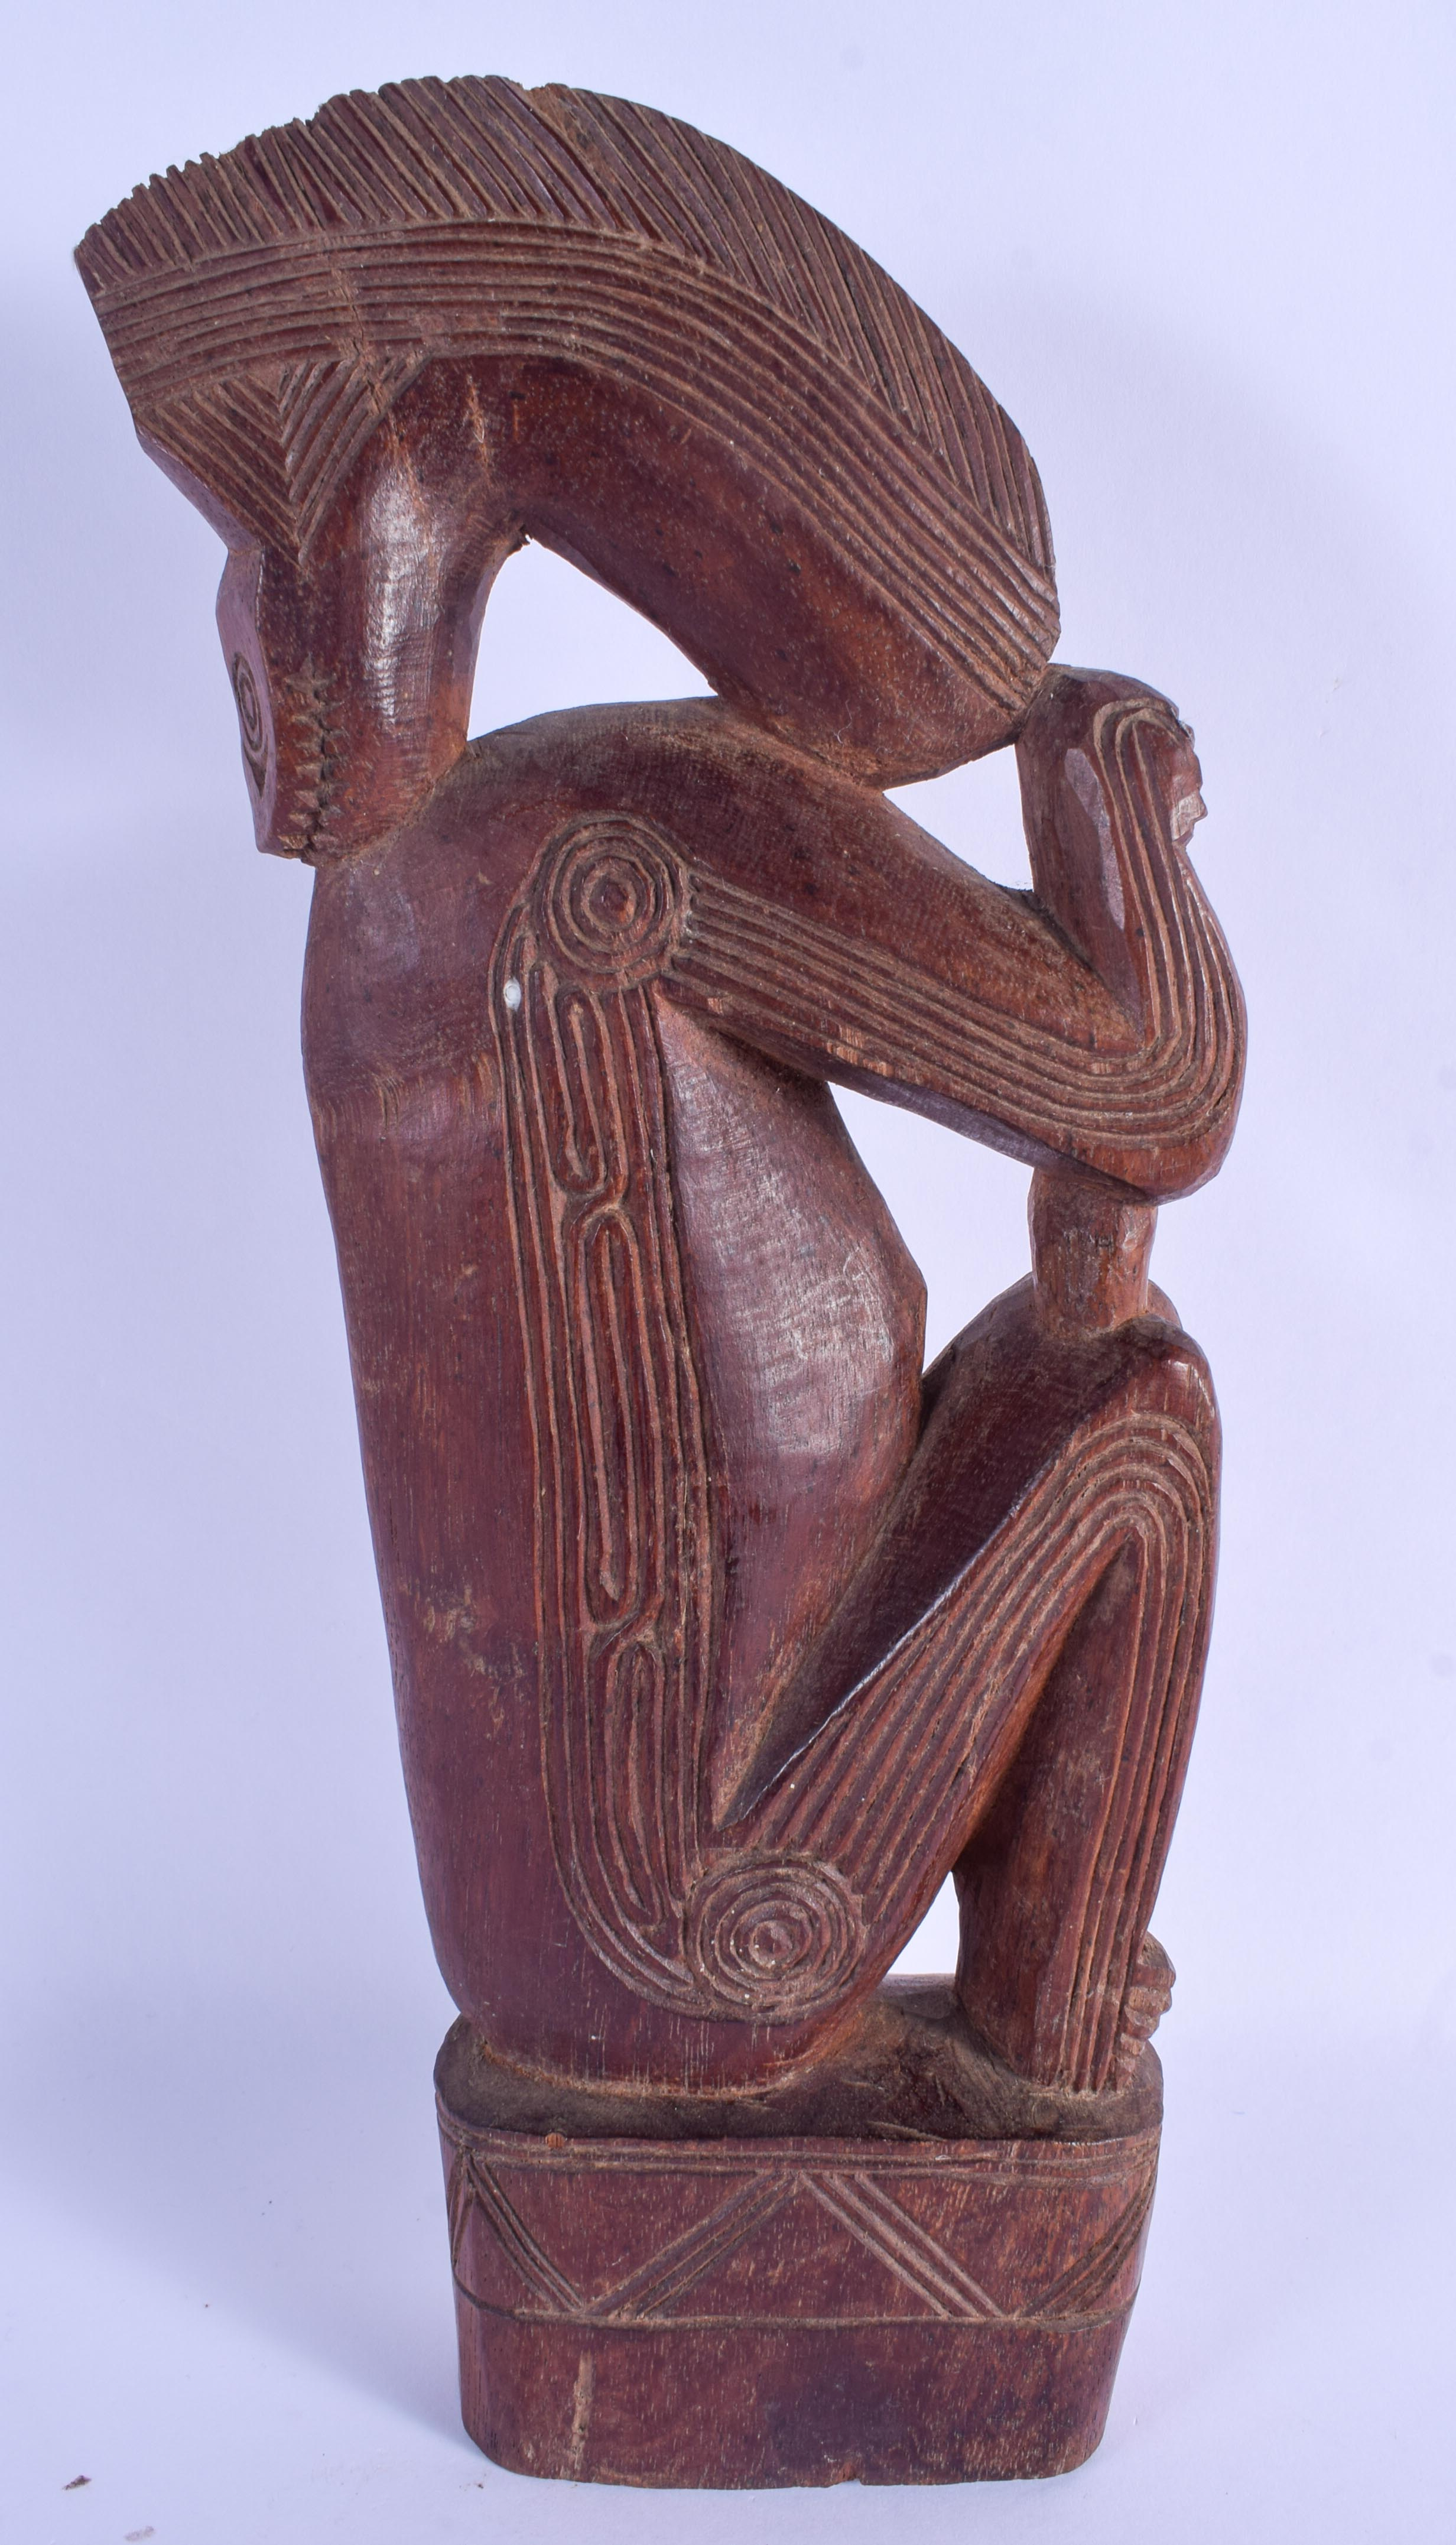 AN UNUSUAL TRIBAL CARVED HARDWOOD FIGURE OF AN ANIMAL possibly Papua New Guinea, Sepik 32 cm x 11 cm - Image 2 of 3